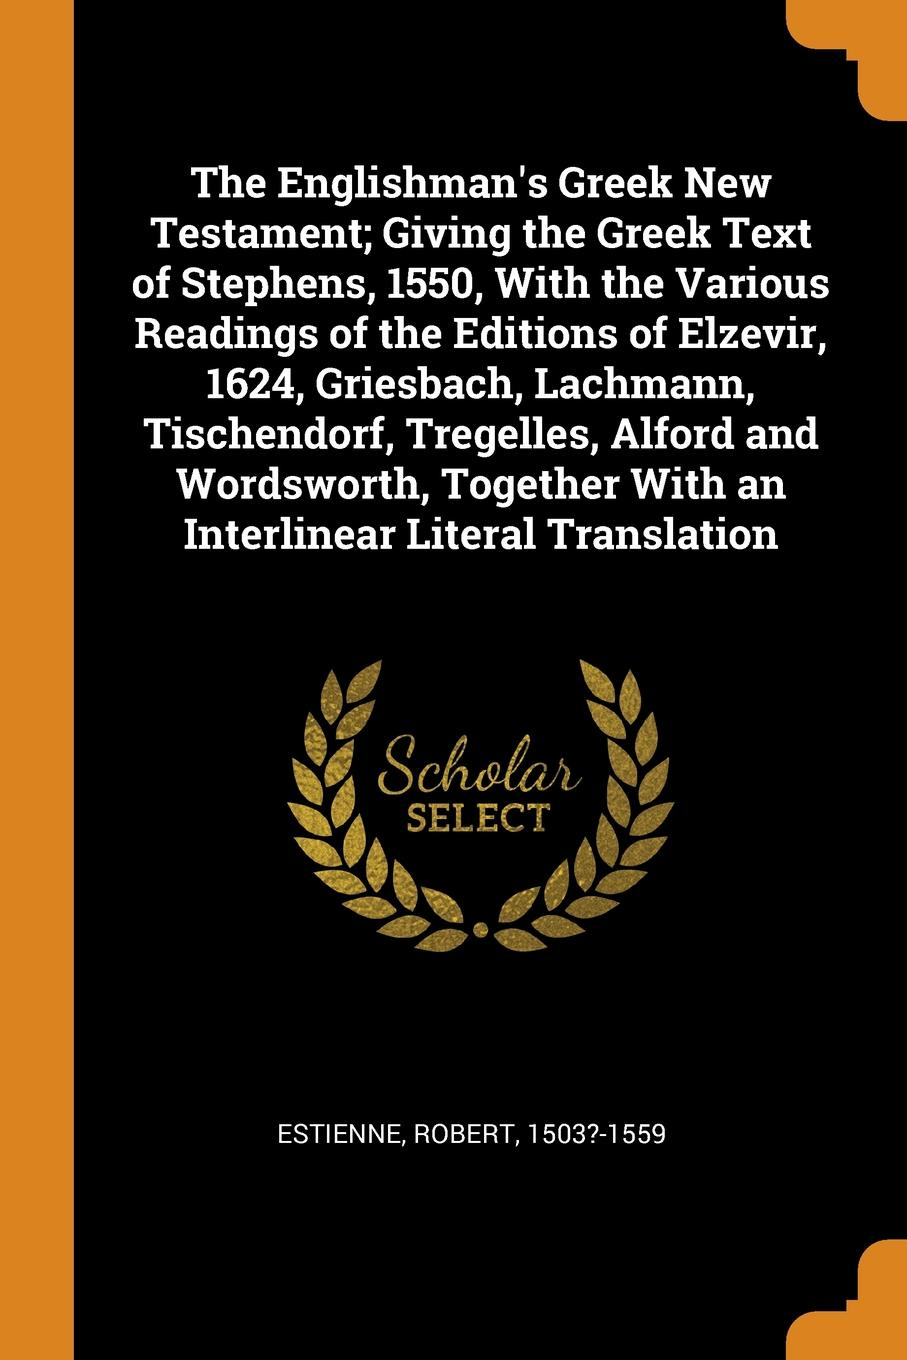 Robert Estienne The Englishman's Greek New Testament; Giving the Greek Text of Stephens, 1550, With the Various Readings of the Editions of Elzevir, 1624, Griesbach, Lachmann, Tischendorf, Tregelles, Alford and Wordsworth, Together With an Interlinear Literal Tra... christopher wordsworth six letters to granville sharp esq respecting his remarks on the uses of the definitive article in the greek text of the new testament